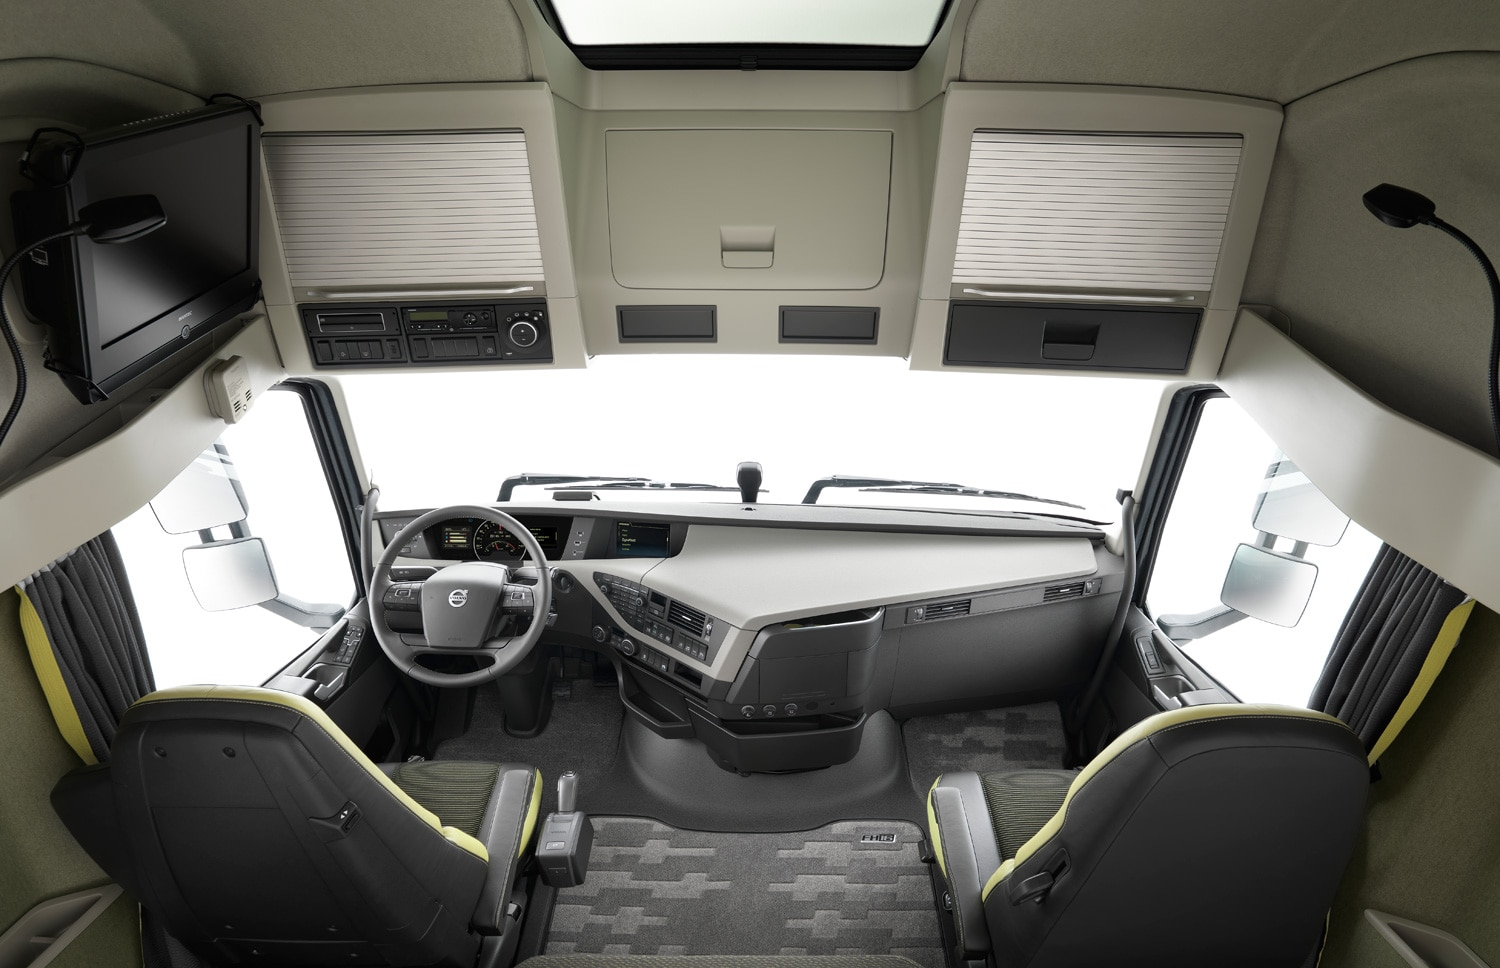 Volvo Fh Globetrotter Cabin View